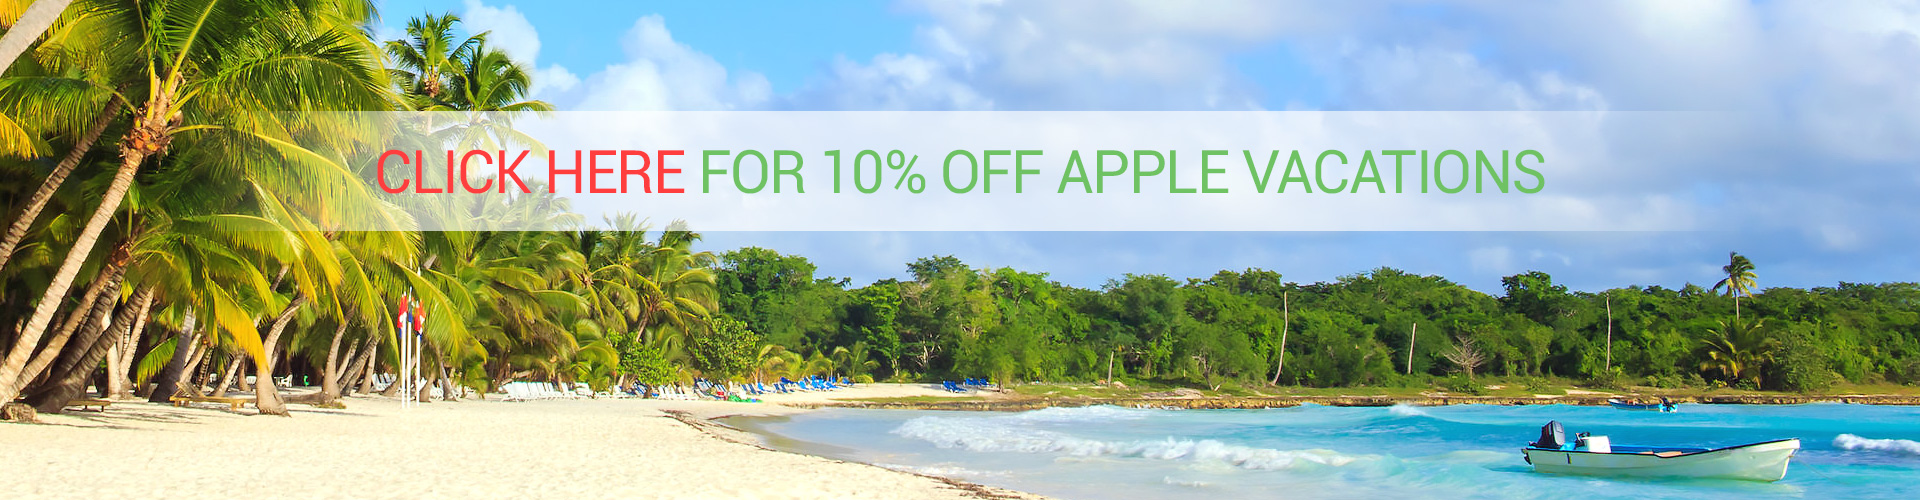 10-Off-Apple-Vacations-R1